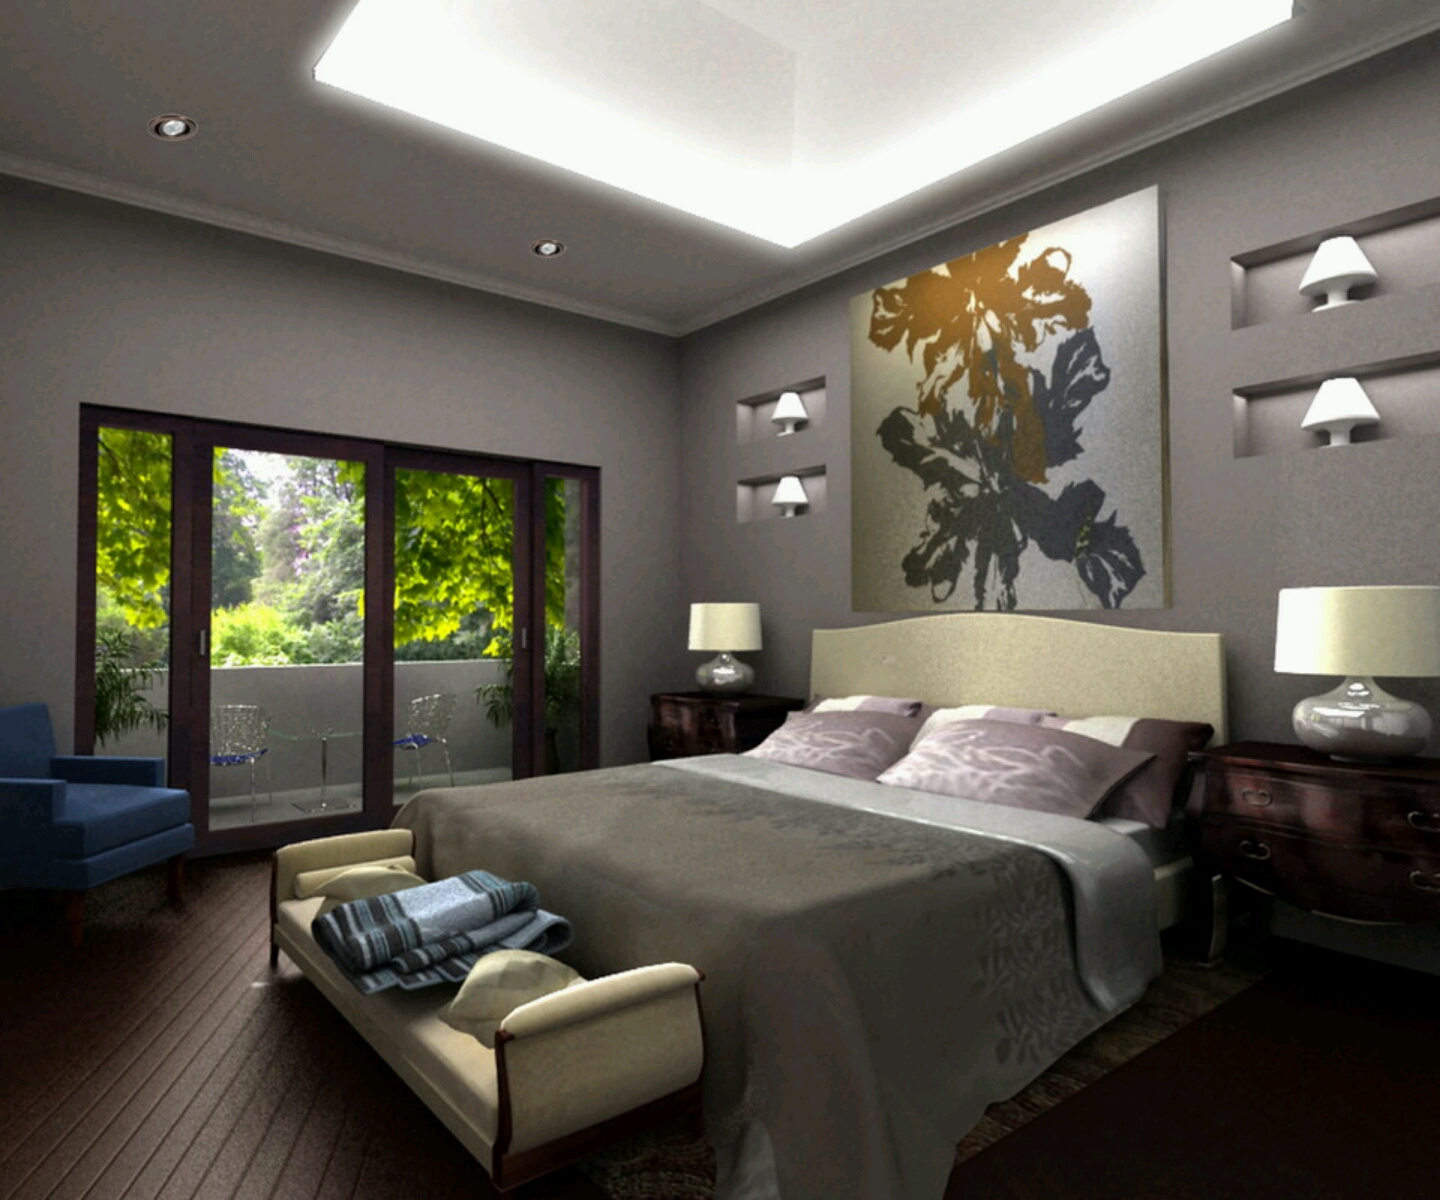 Modern bed designs beautiful bedrooms designs ideas for Interior bed design images